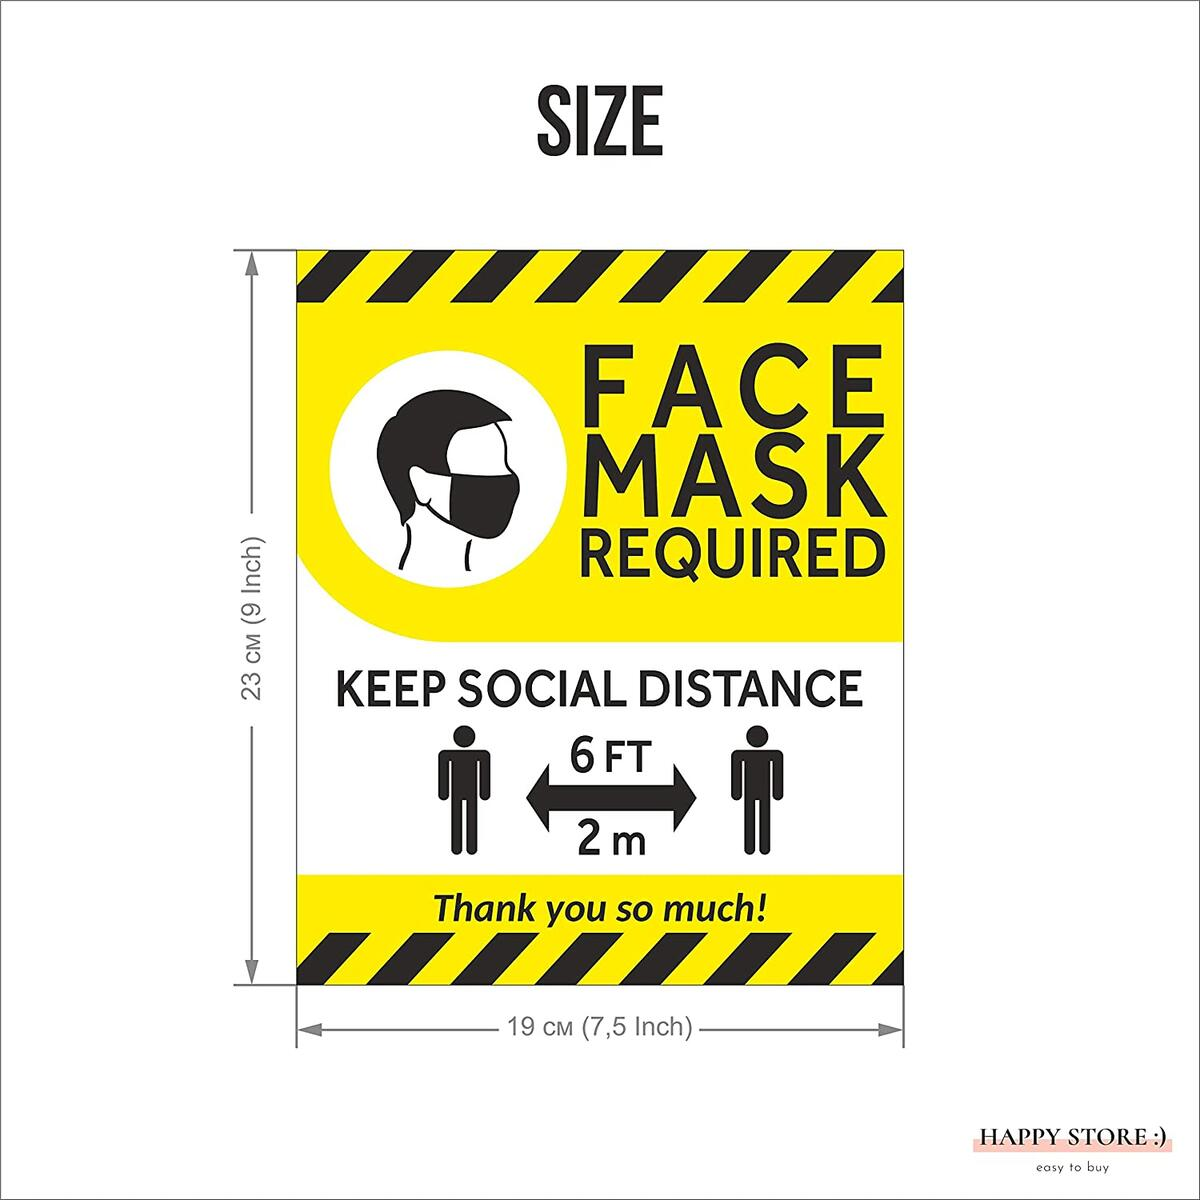 HAPPY STORE:) Pack of 5 face masks required signs| Masks required decal 7,5х9''| Face mask stickers| Mask required to enter sign| Entry reminder please wear face mask decal| Indoor & Outdoor| Sign (Yellow, Medium)